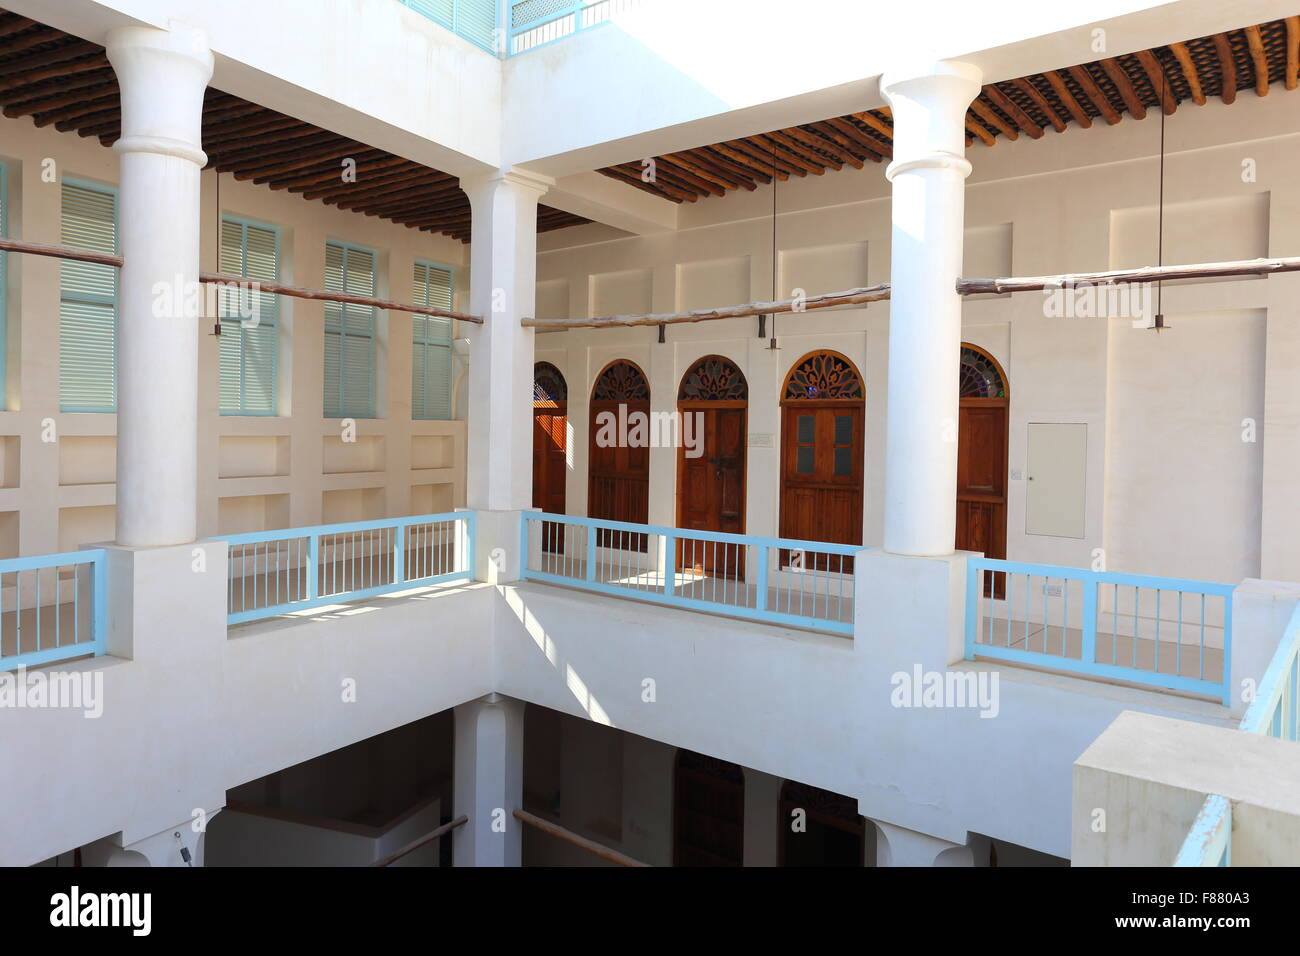 Interior balconies above the courtyard of the Khalaf House, Manama, Kingdom of Bahrain - Stock Image